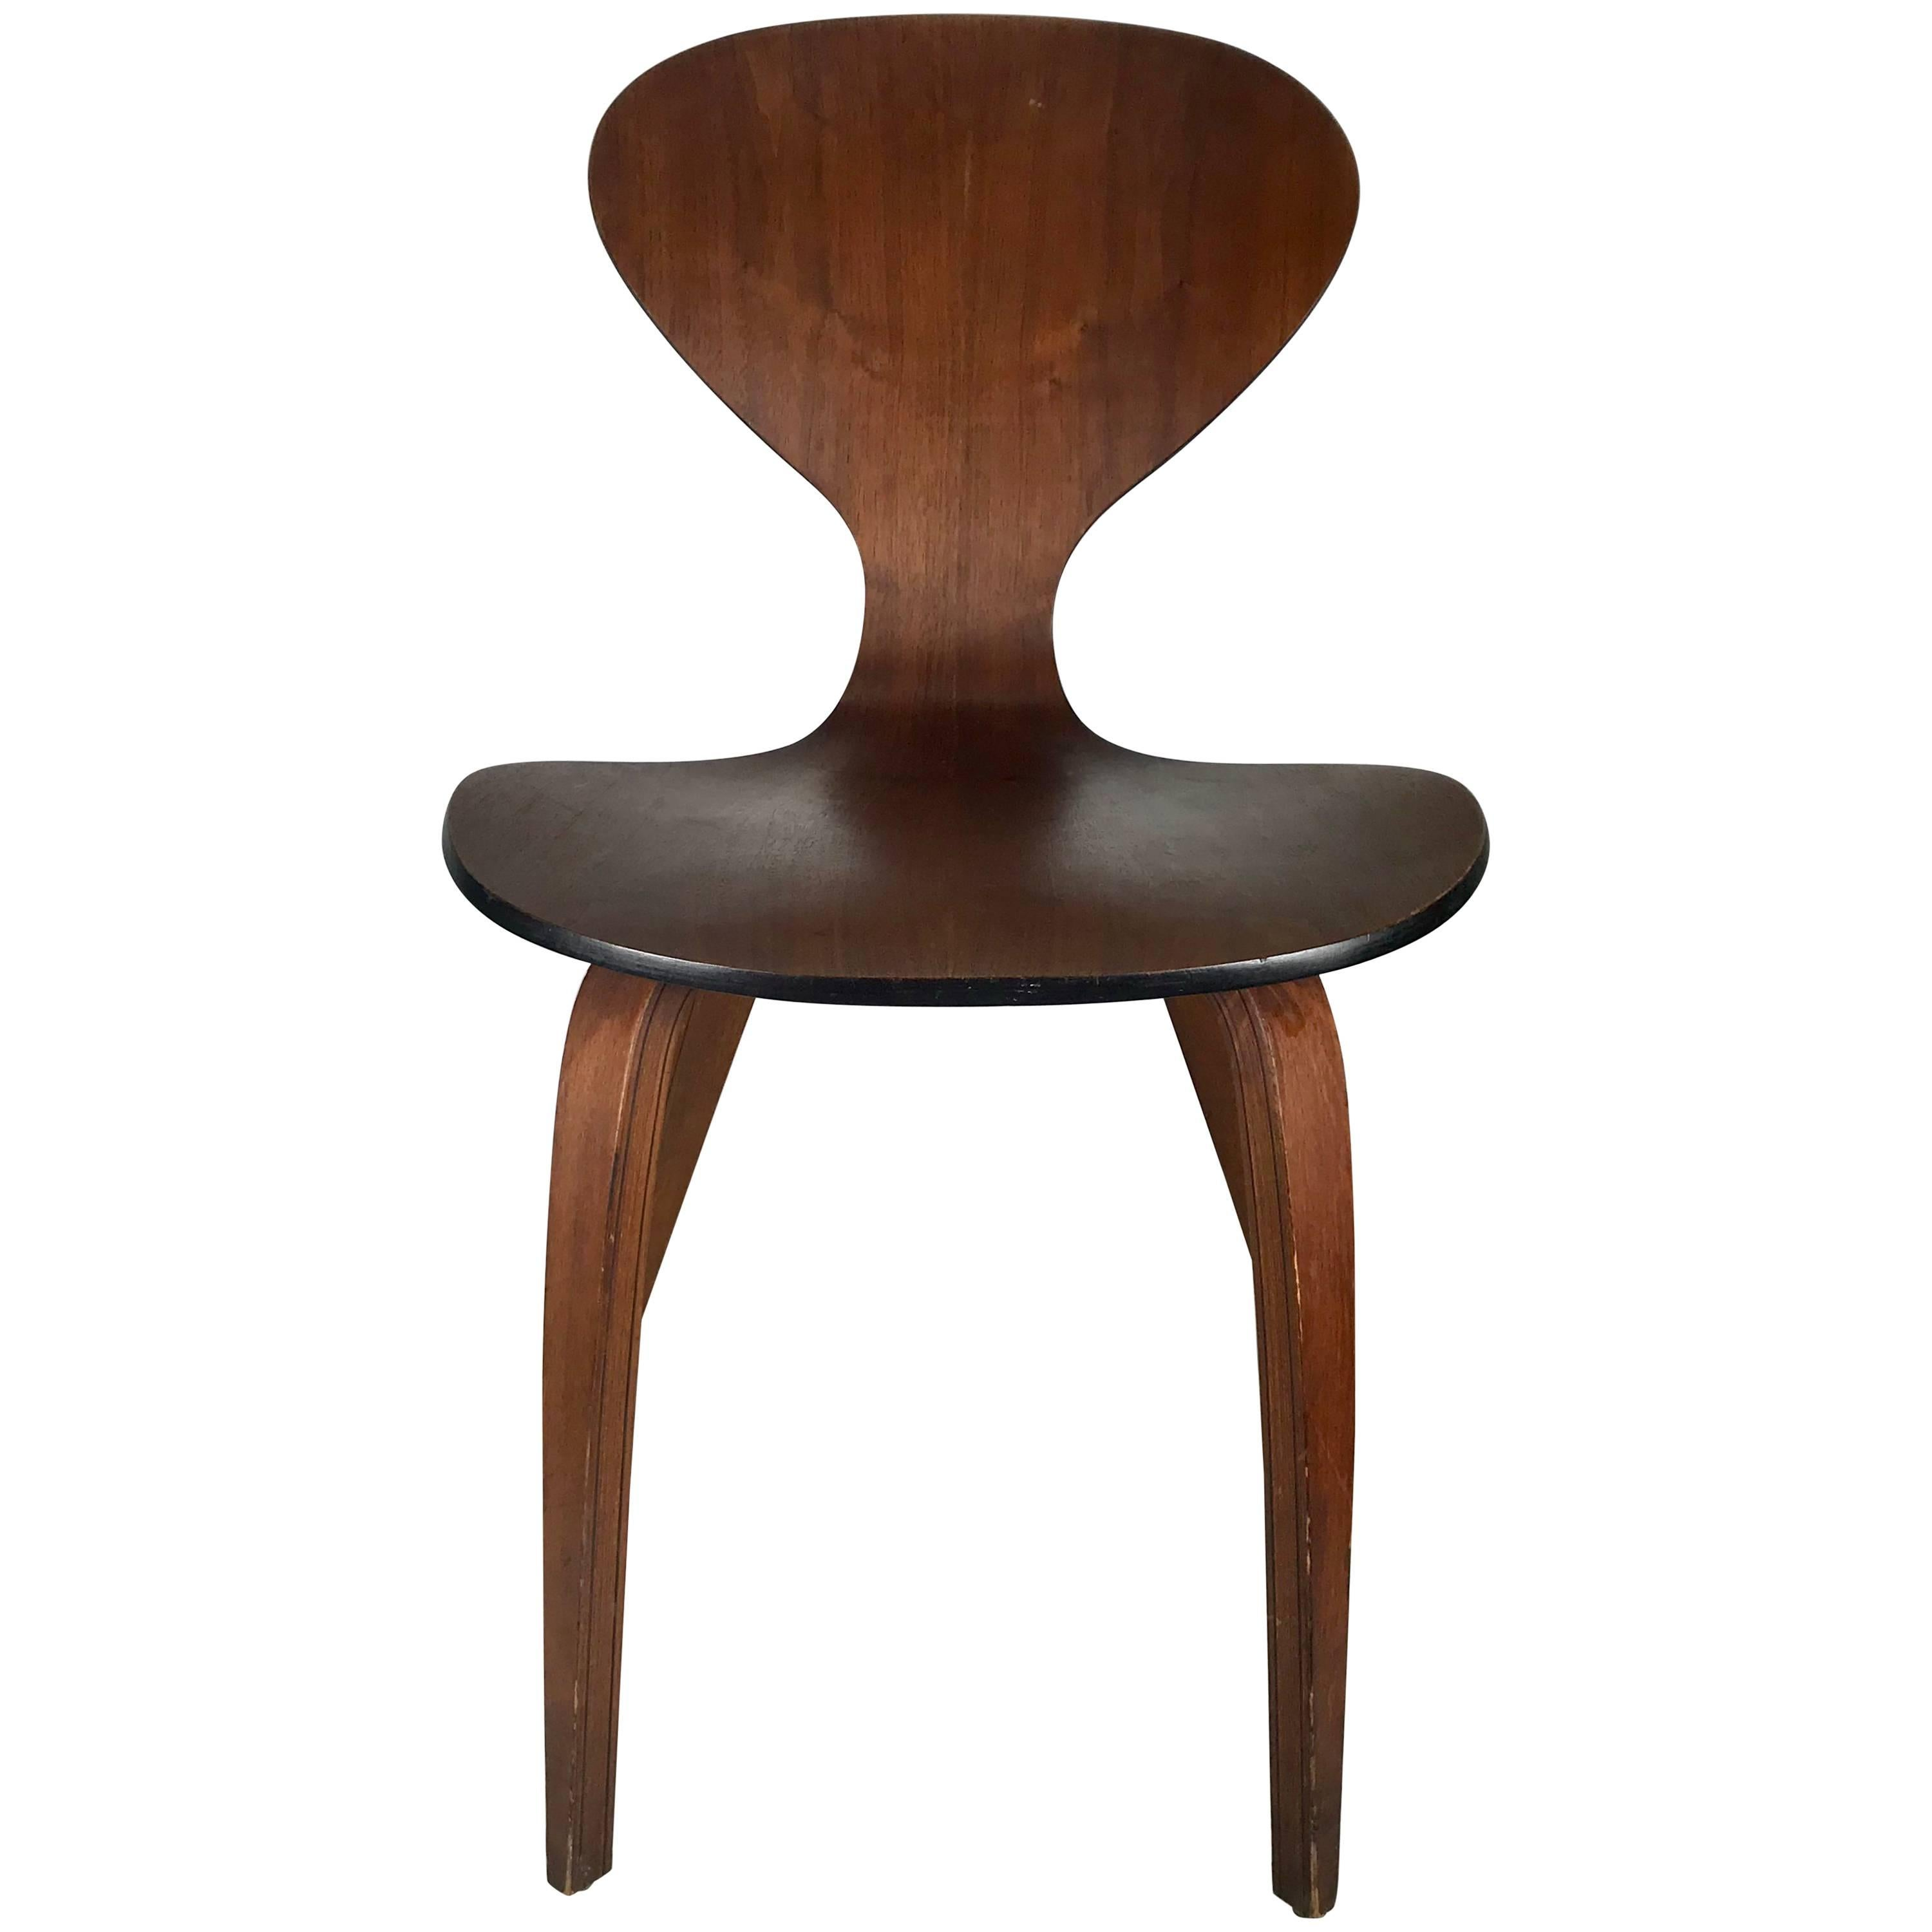 Classic Mid Century Modern Plywood Chair By Norman Cherner For Plycraft